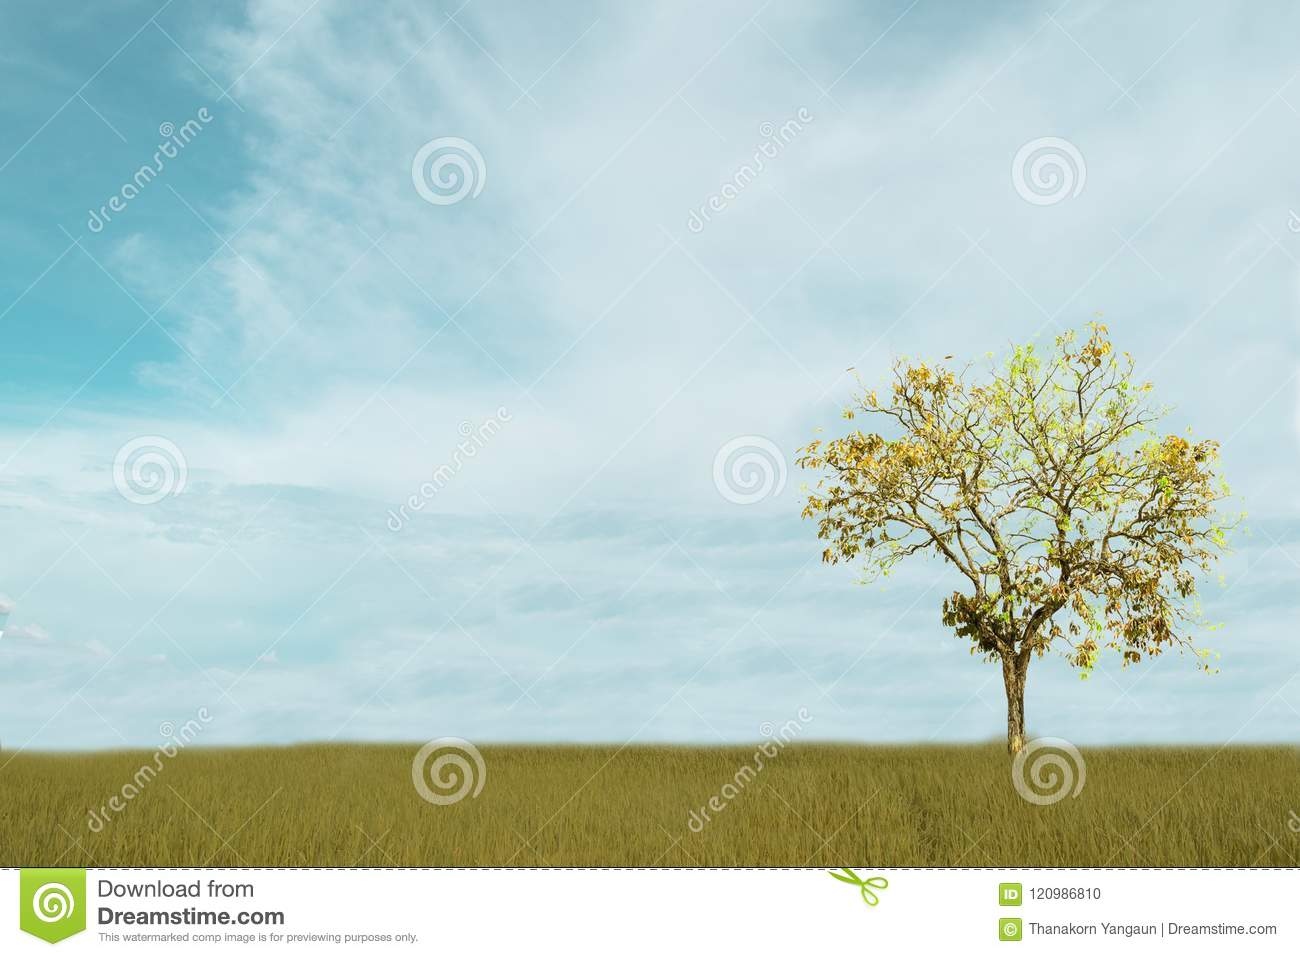 Beautiful white Cloudy and blue sky over tree isolated on green field background.